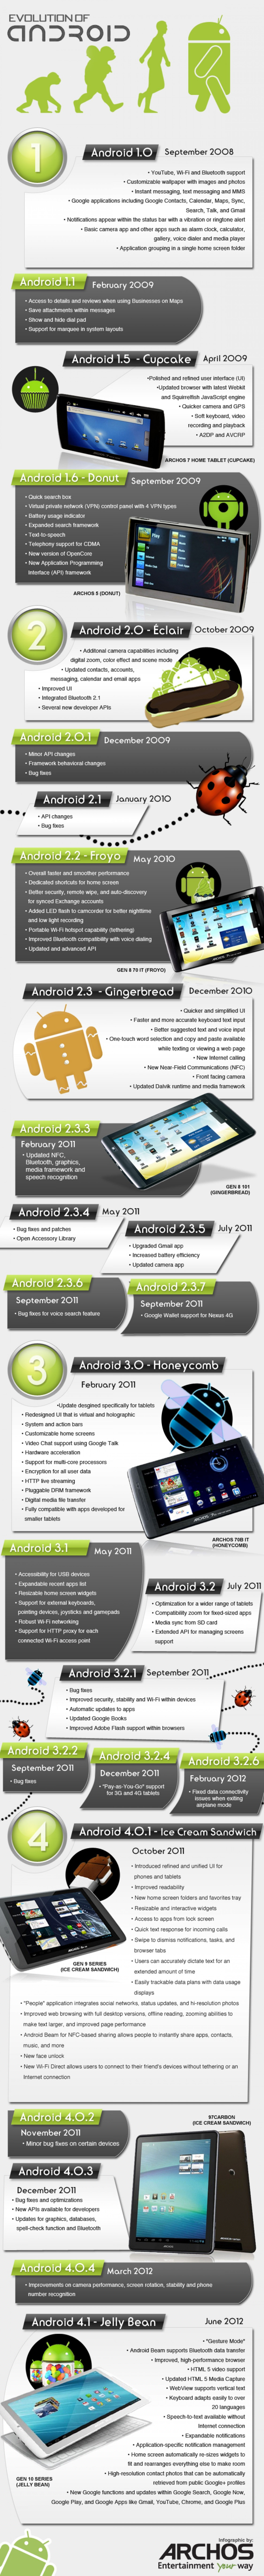 Evolution of Android